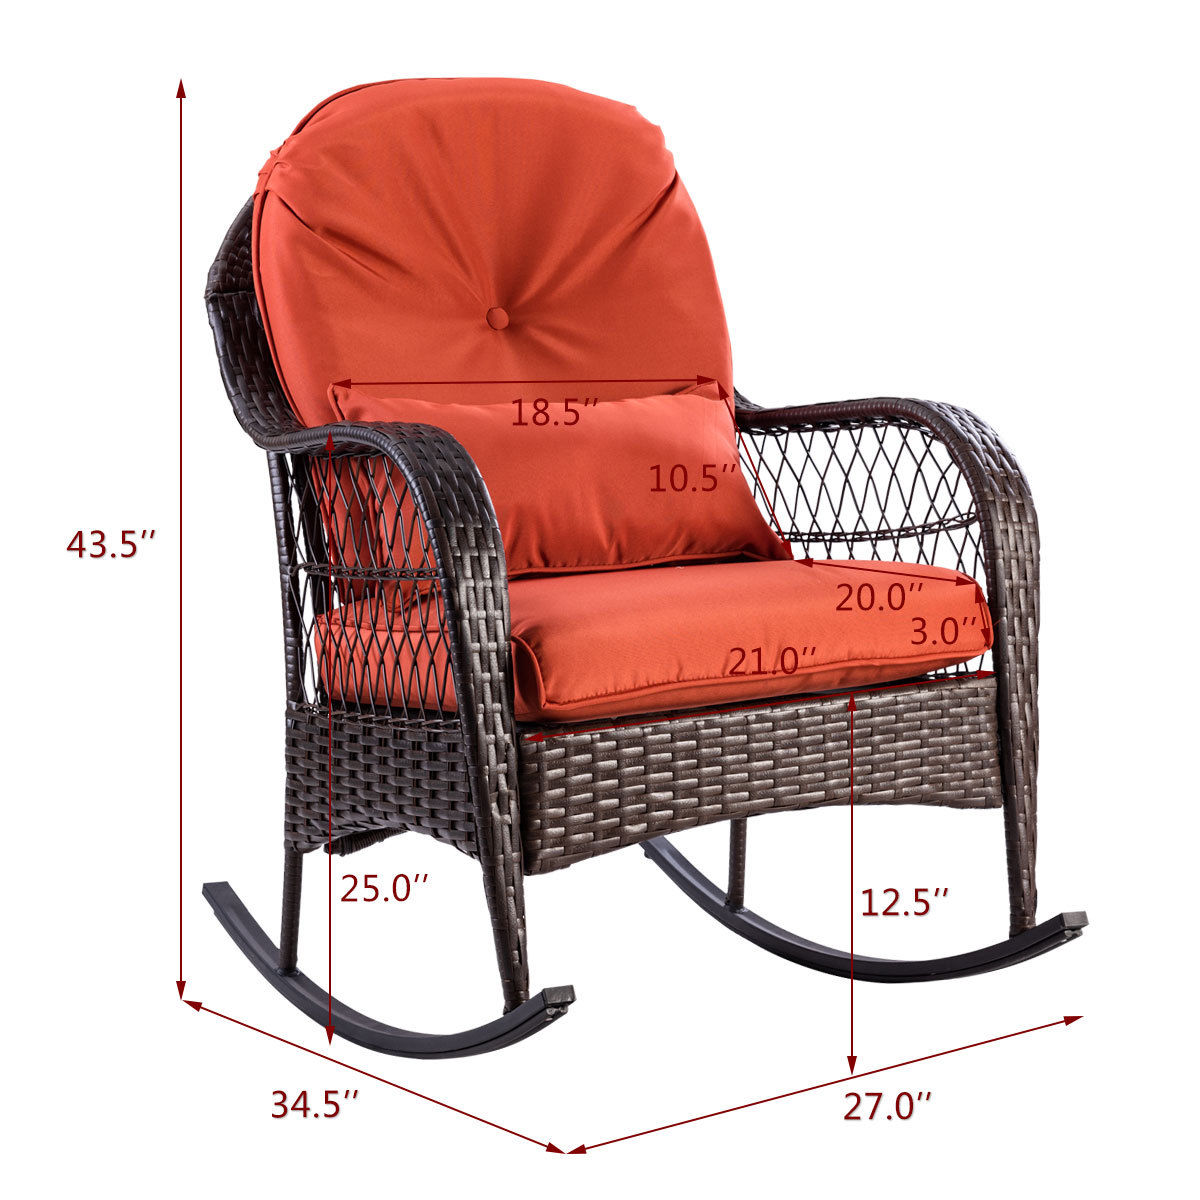 Giantex Patio Rattan Wicker Rocking Chair Modern Porch Deck Rocker Outdoor  Furniture With Padded Cushion HW57256 In Garden Chairs From Furniture On ...